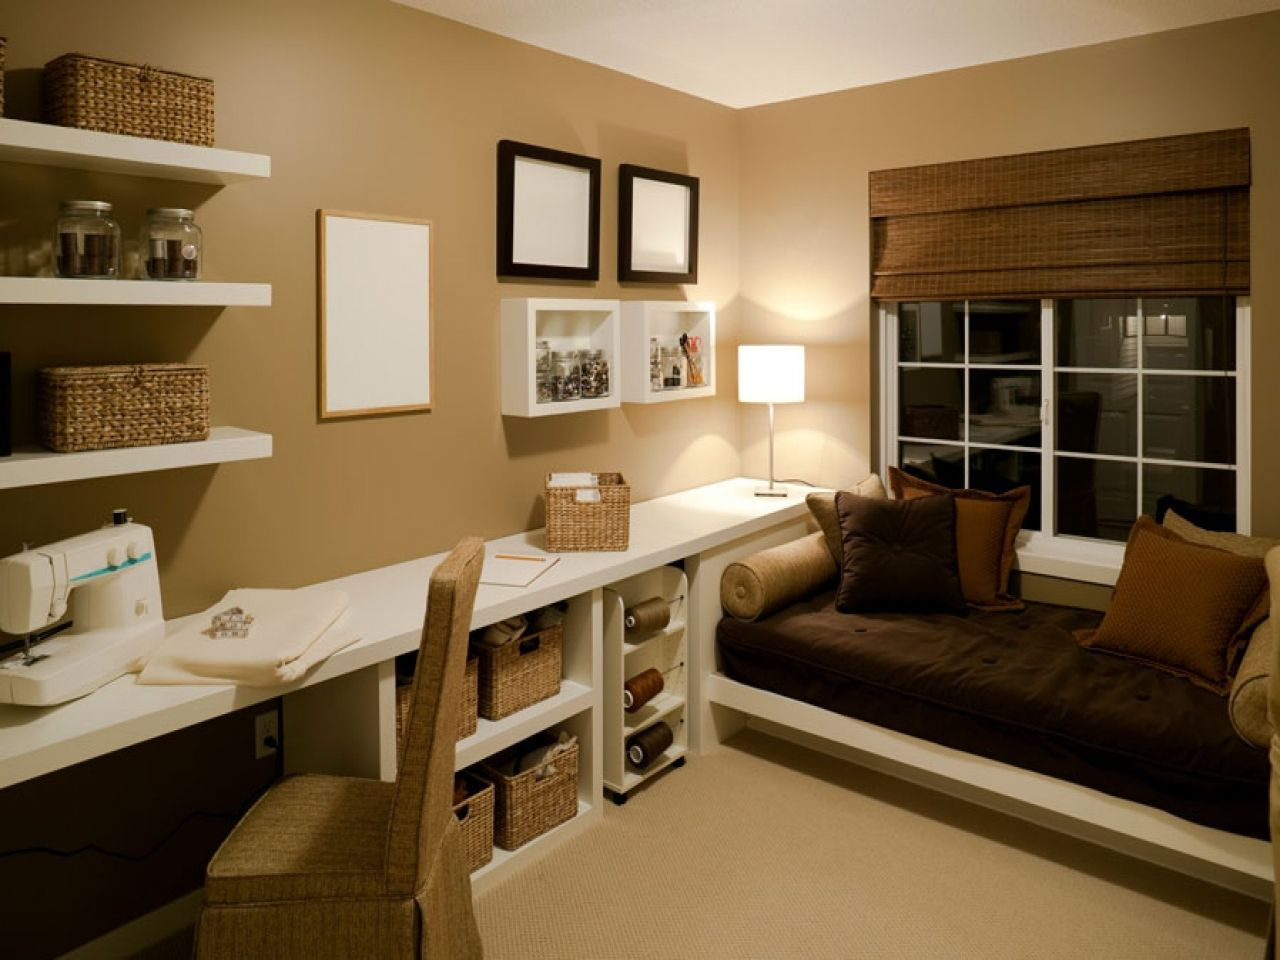 Home office spare bedroom bedroom ideas second bedroom office ideas print coloring pages minimalisthomedesign com